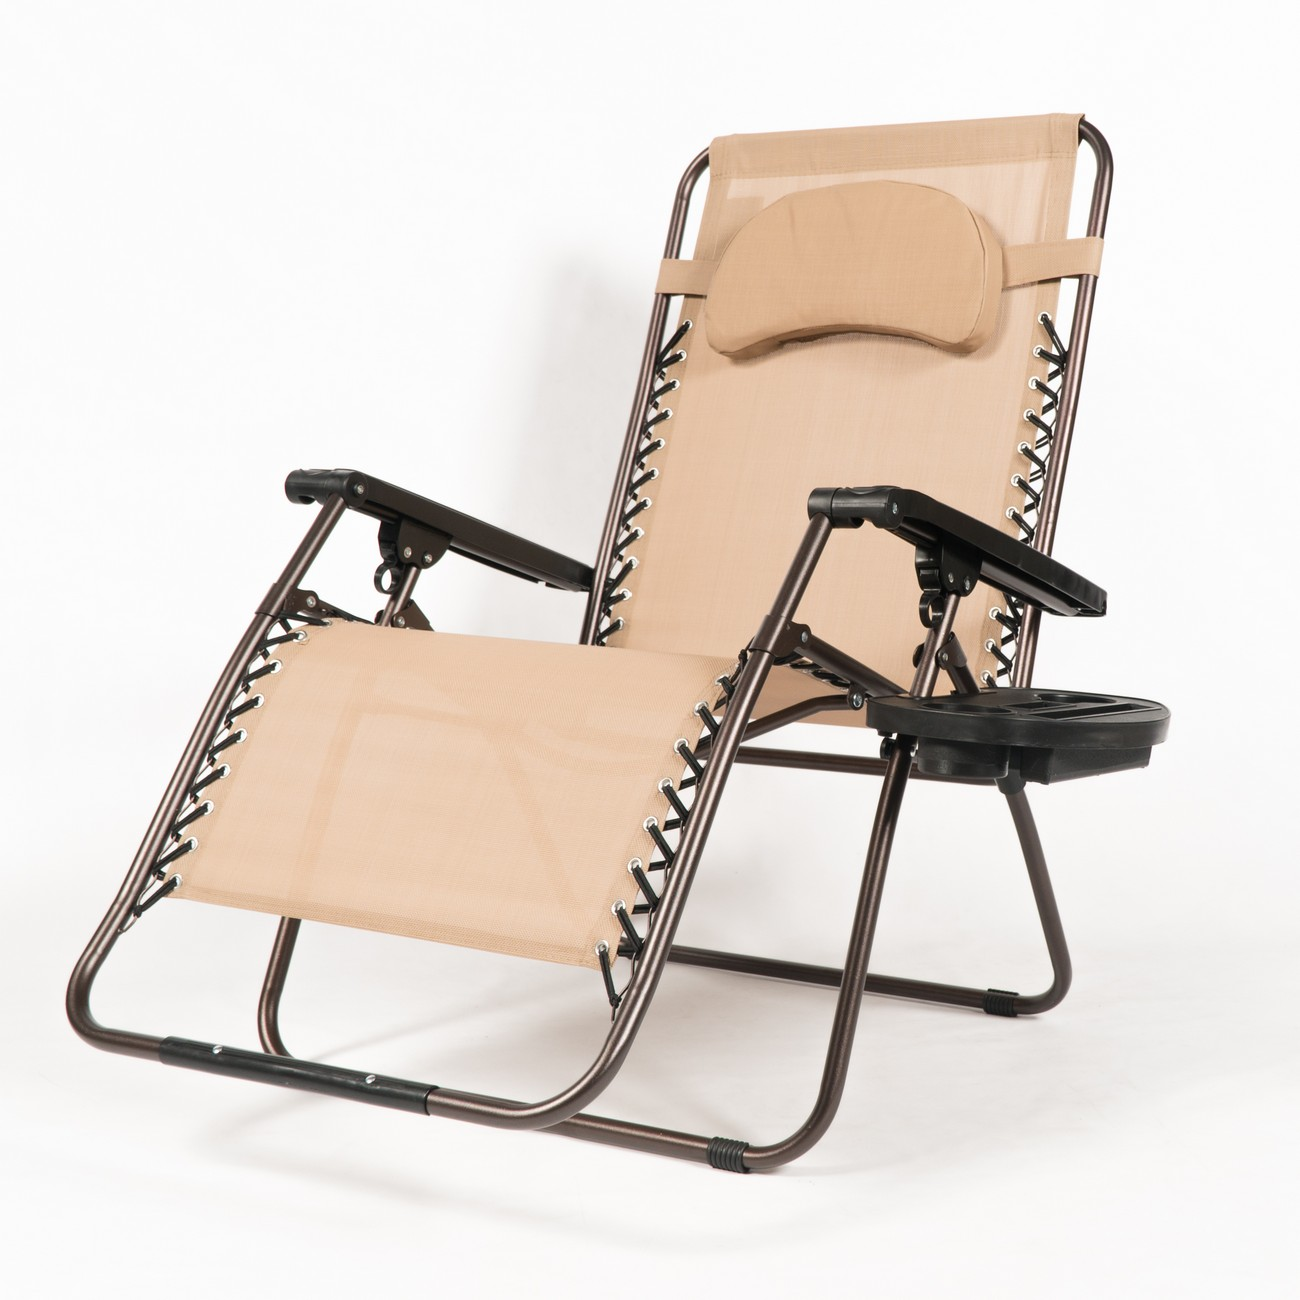 belleze extra large oversized zero gravity chair recliner super durable reclining patio chair with cup holder beige walmart com